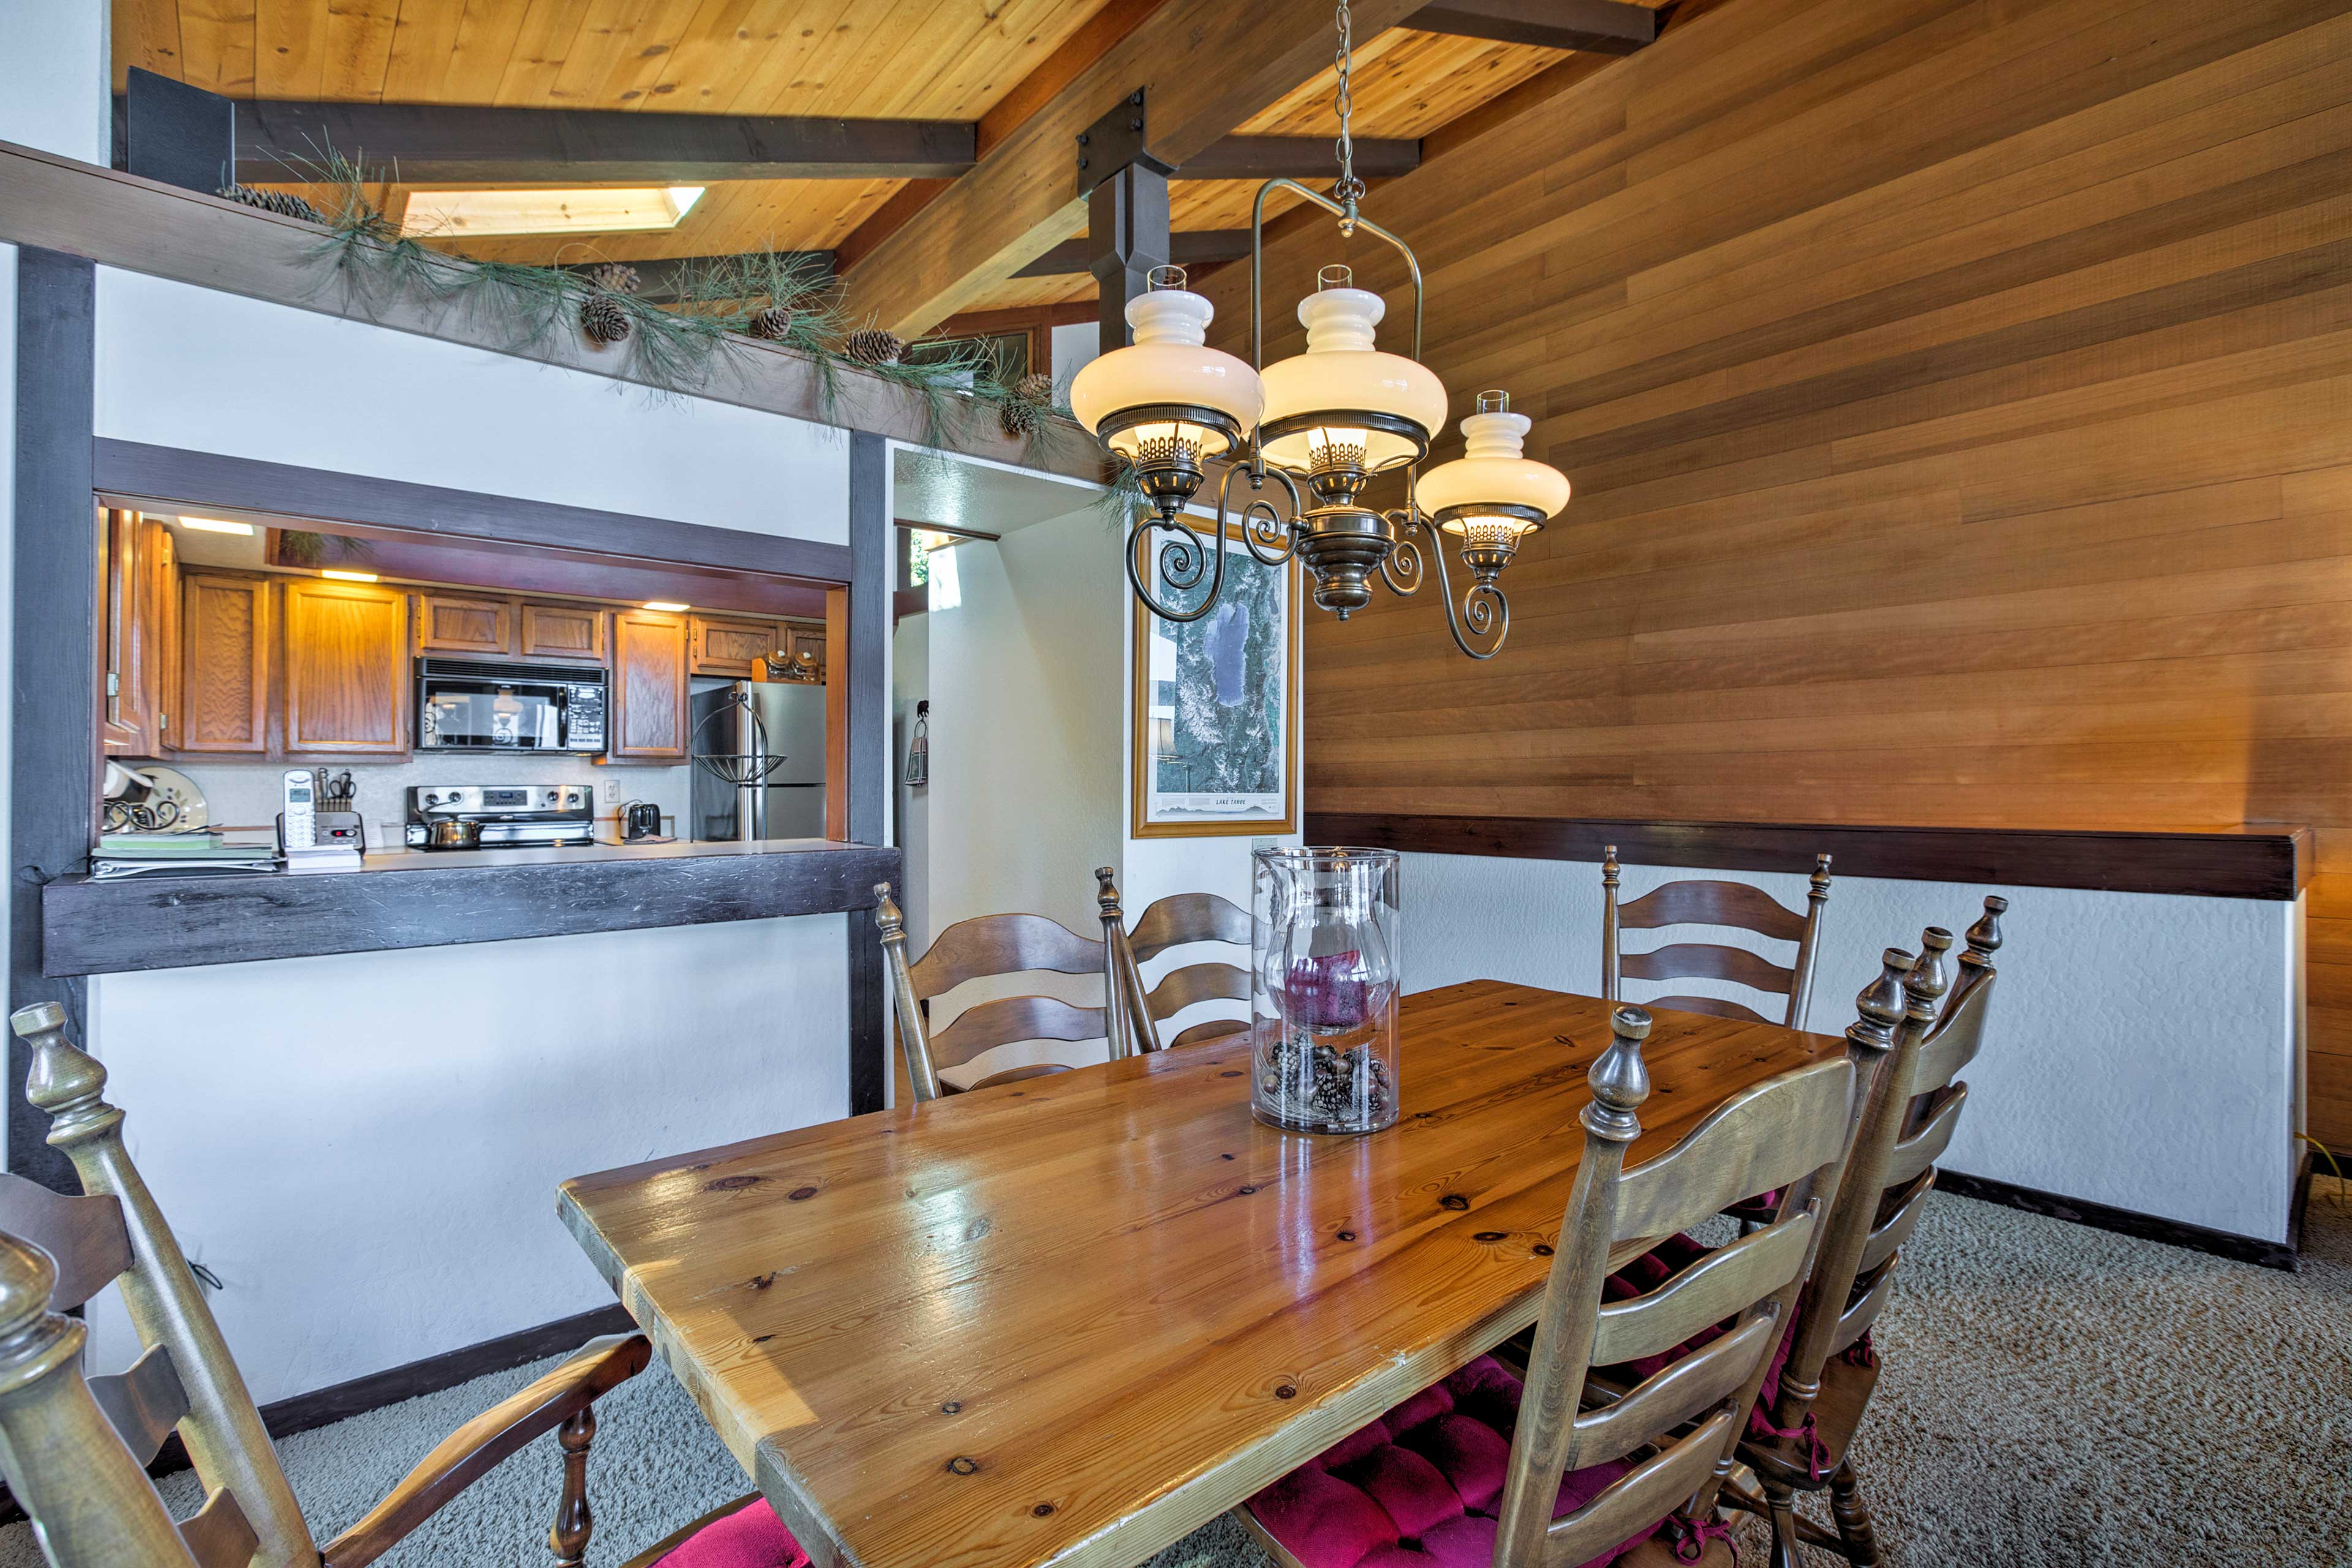 Gather around the wooden dining table for a home-cooked meal.